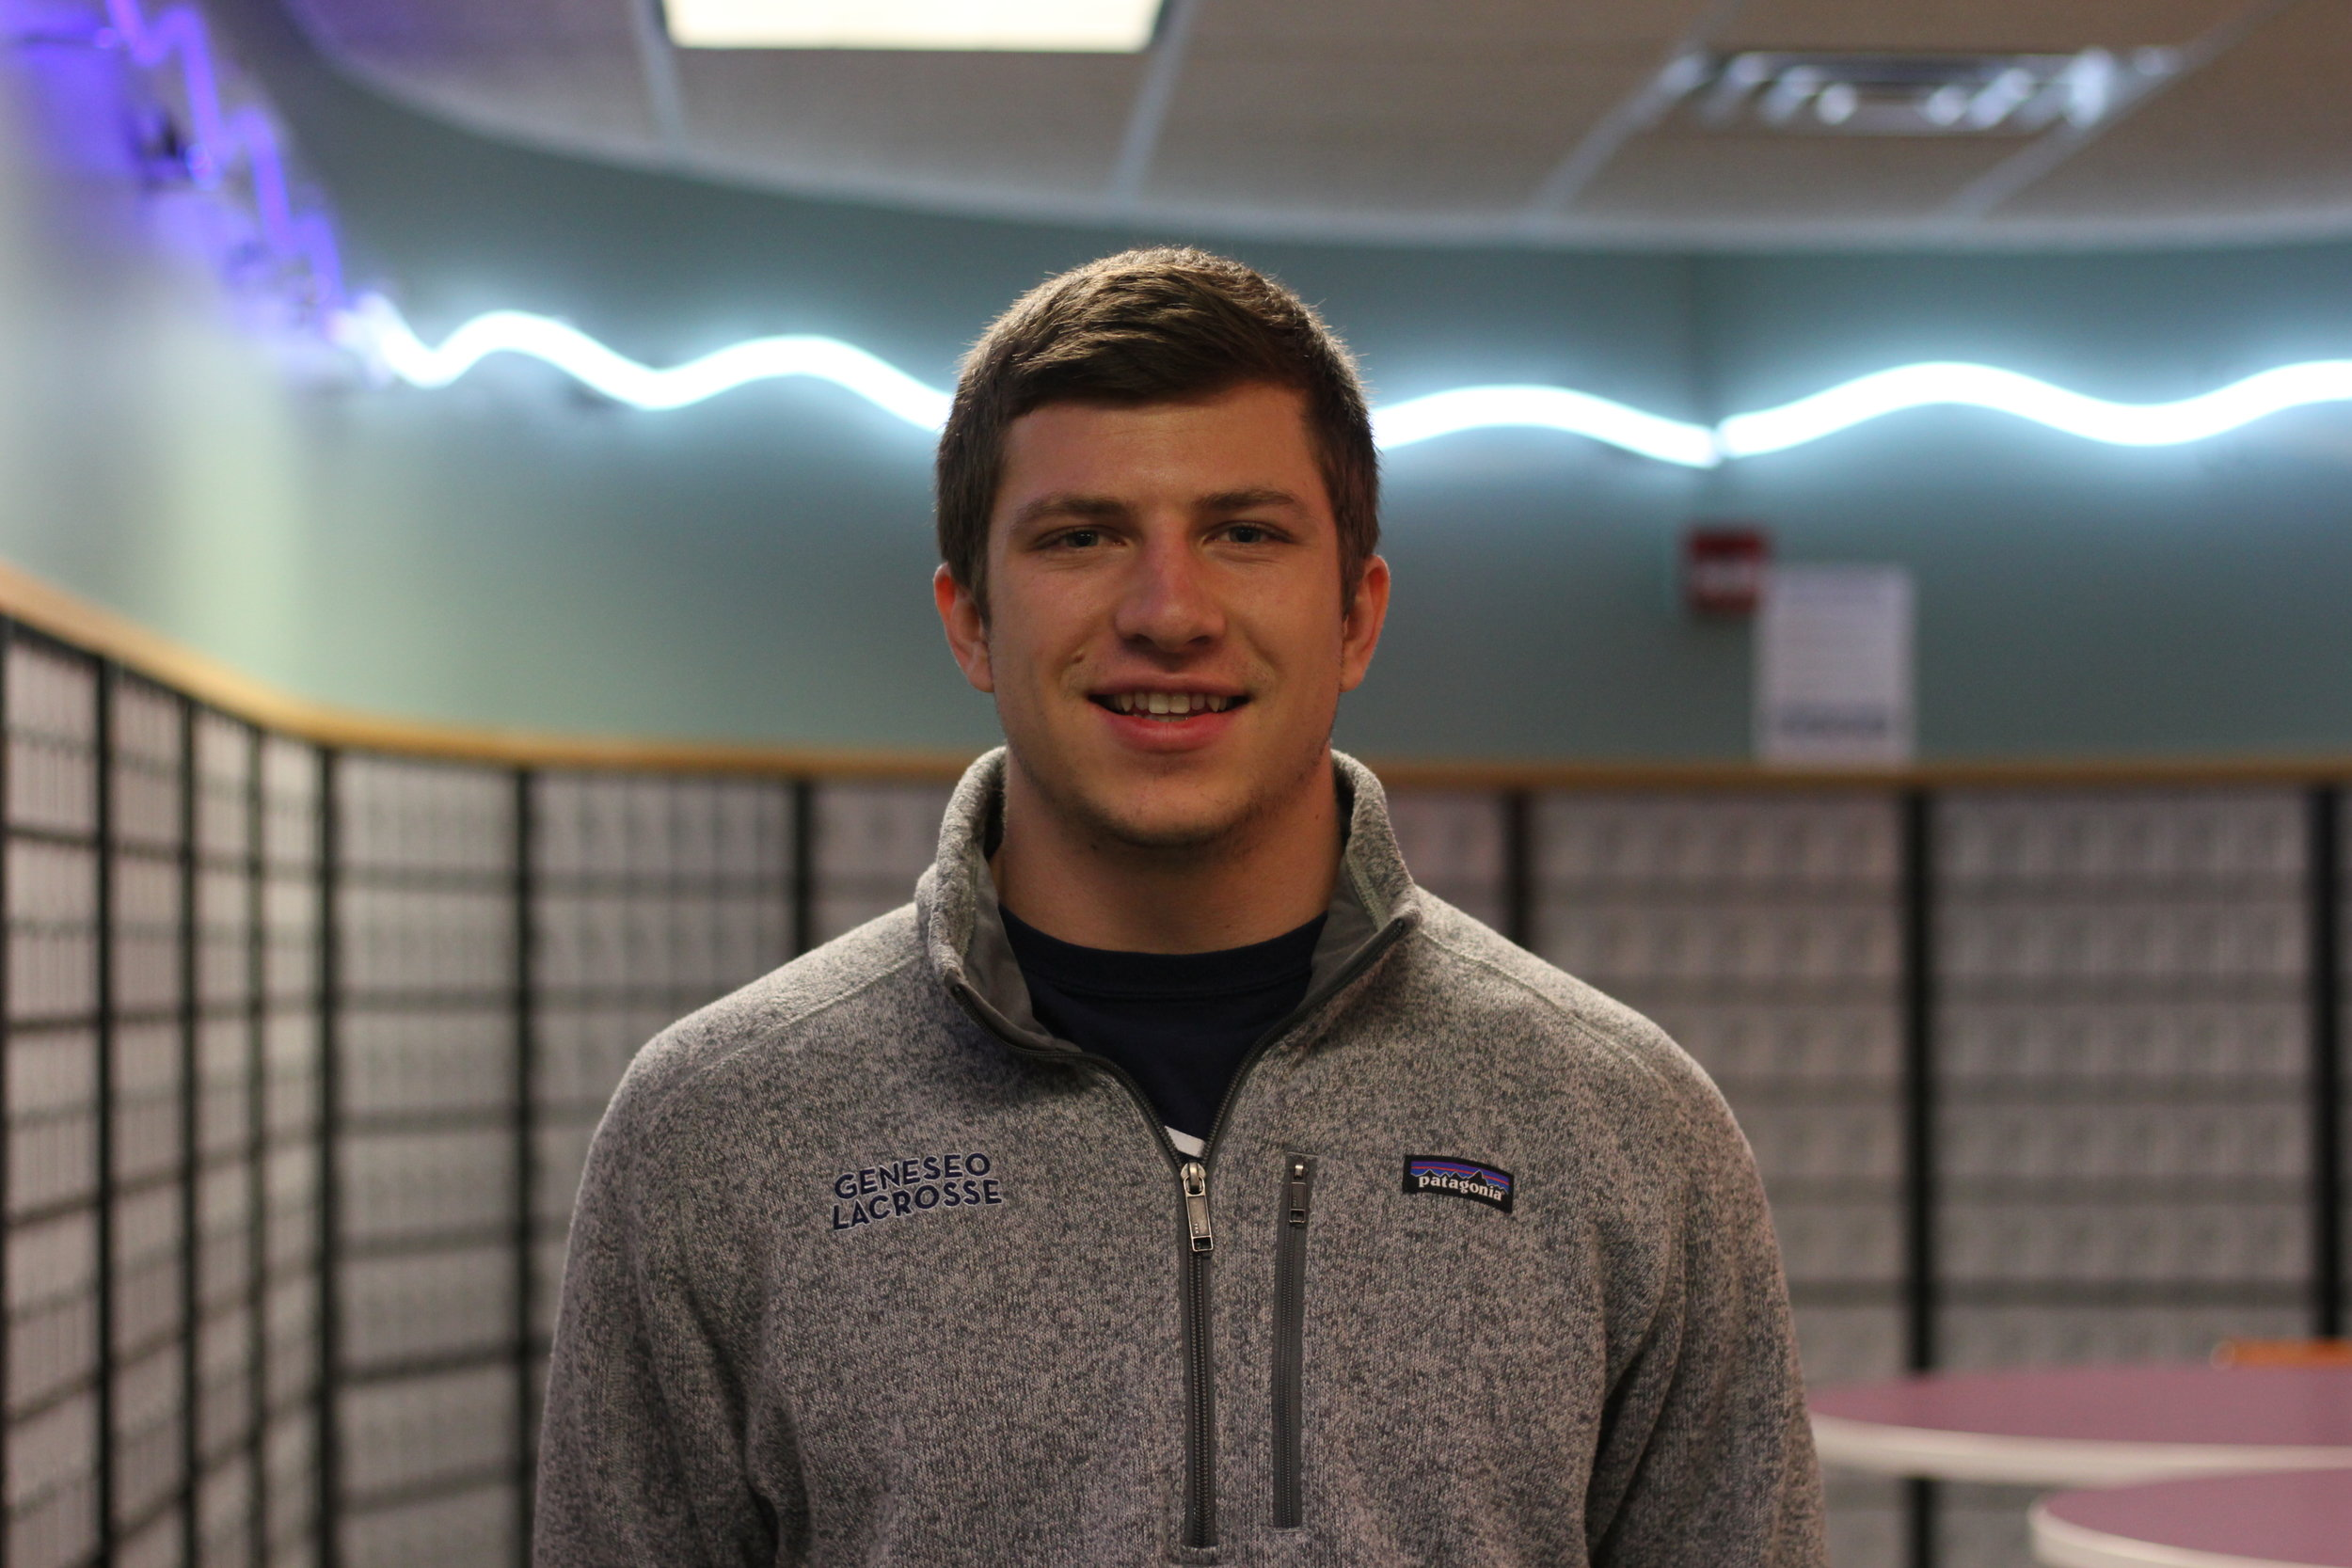 Senior communication major Drew Madarasz is a key asset to the Geneseo men's lacrosse team, as he is a figure for the underclassmen to look up to. After graduation, Madarasz plans to use the skills he has learned at Geneseo in the digital marketing field. (Annie Renaud/News Editor)